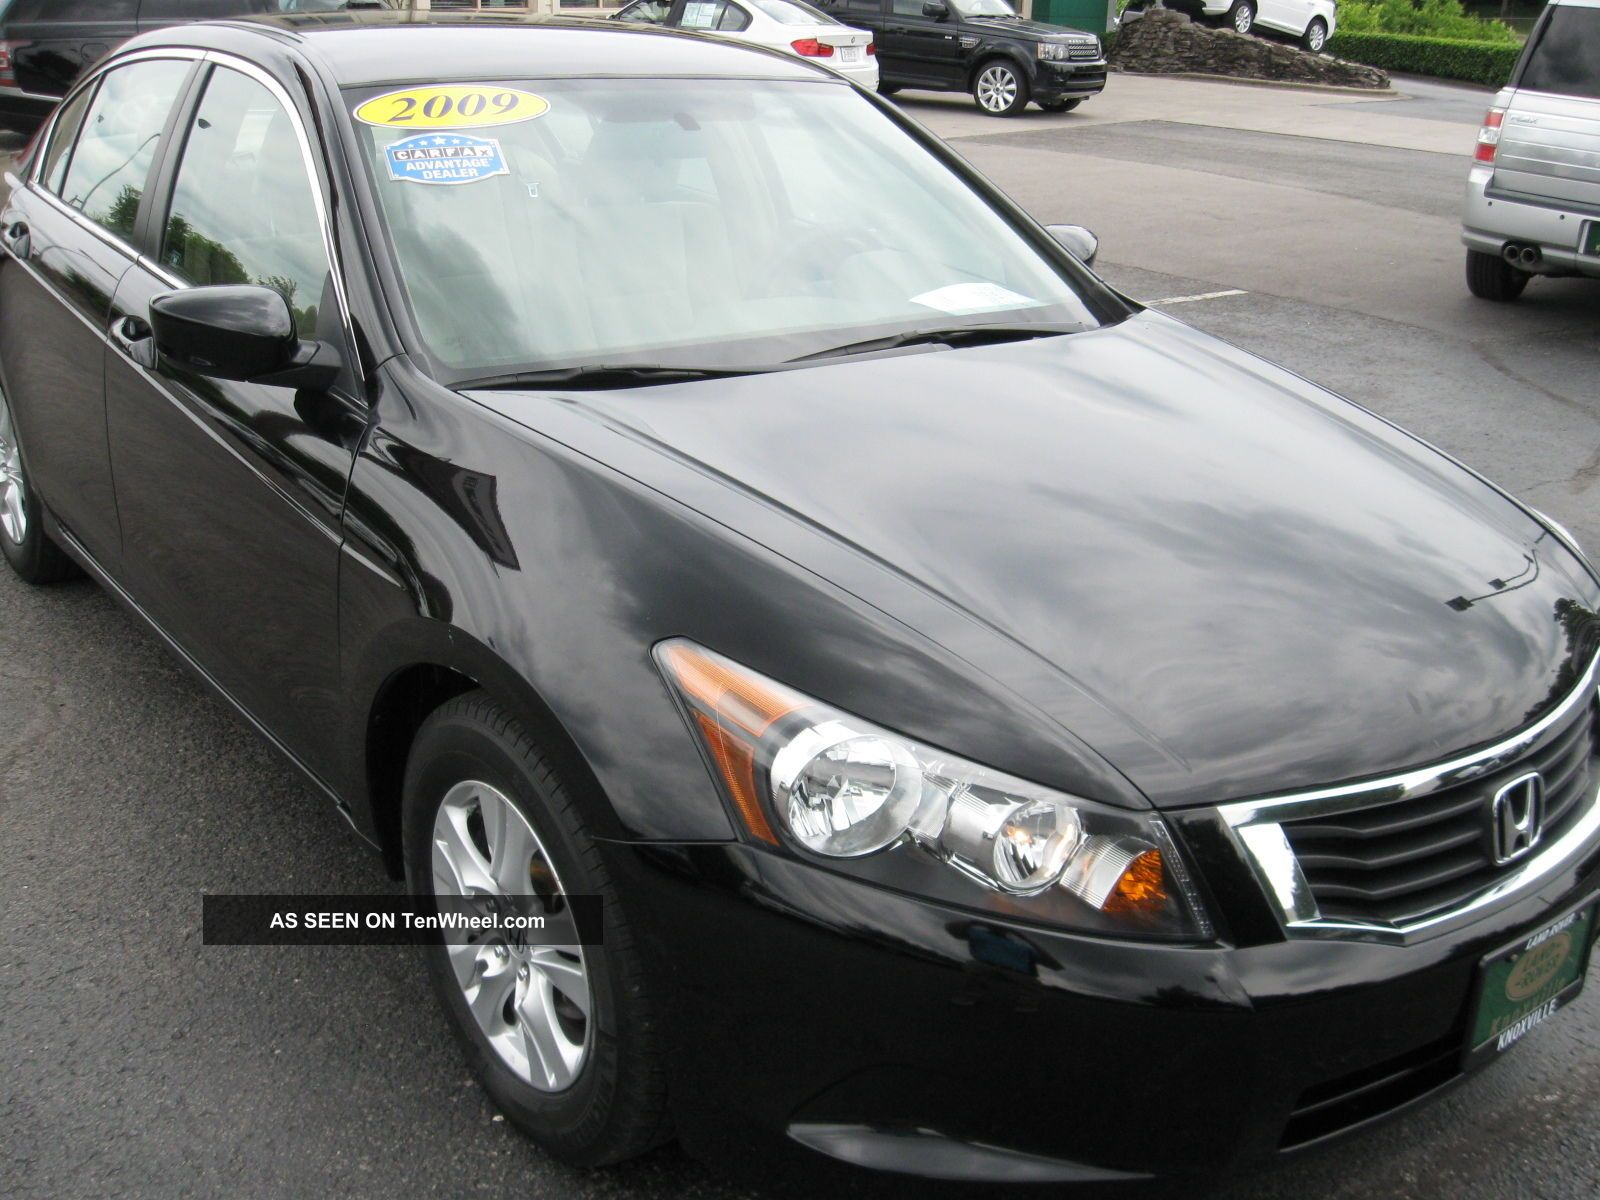 2009 honda accord lx p sedan 4 door 2 4l for 09 2 door honda accord